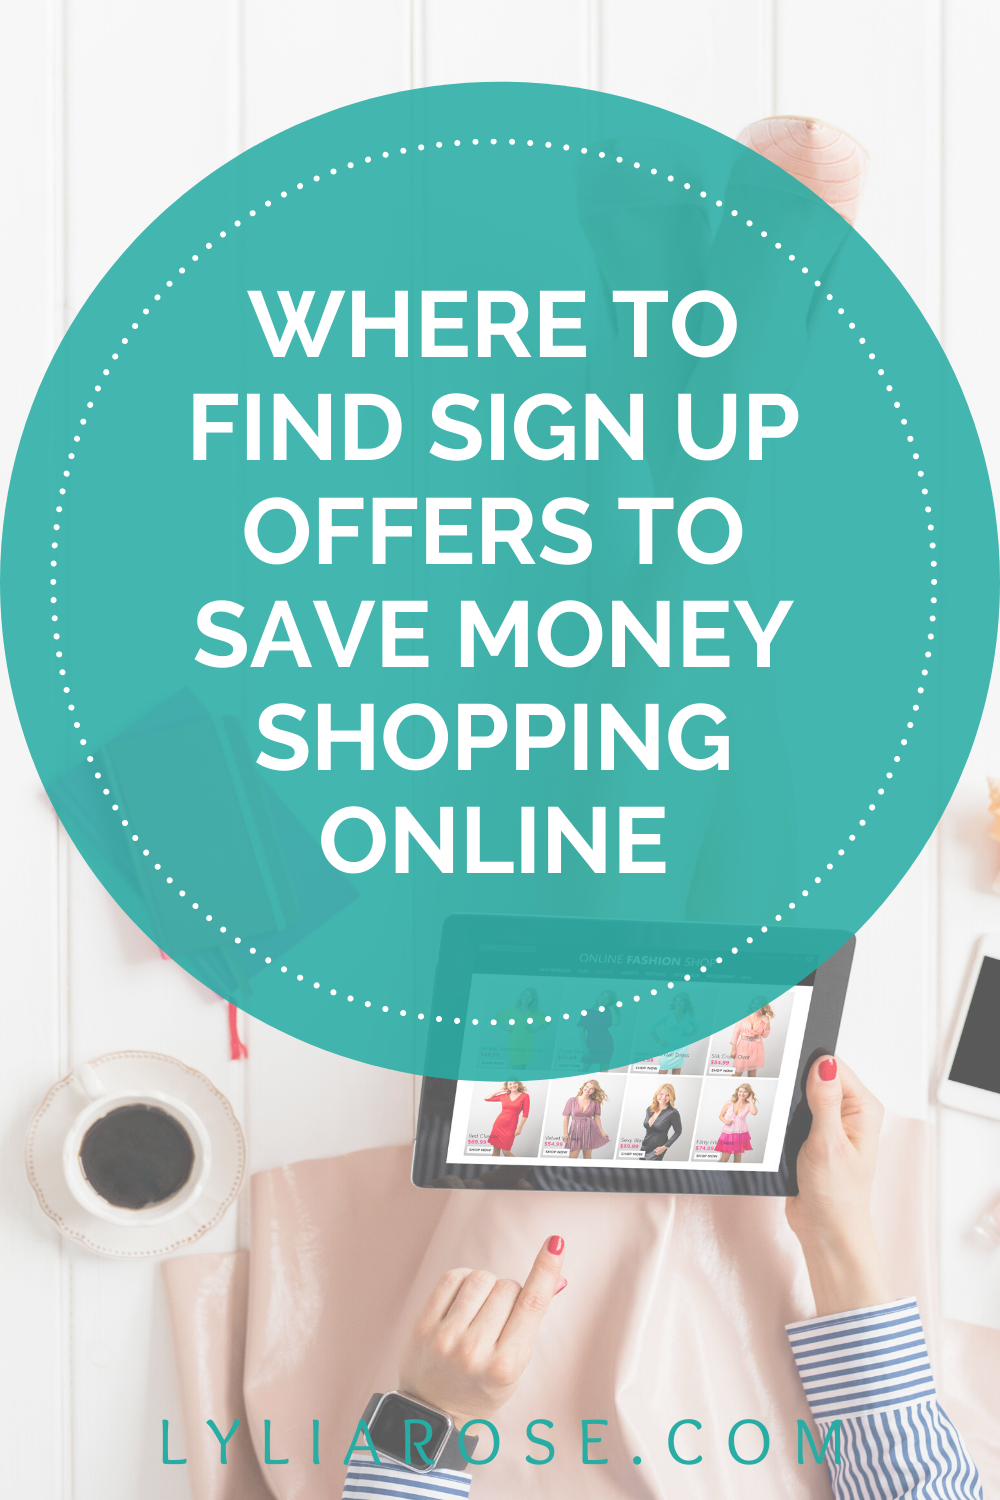 How to find sign up offers + save money shopping online (2)